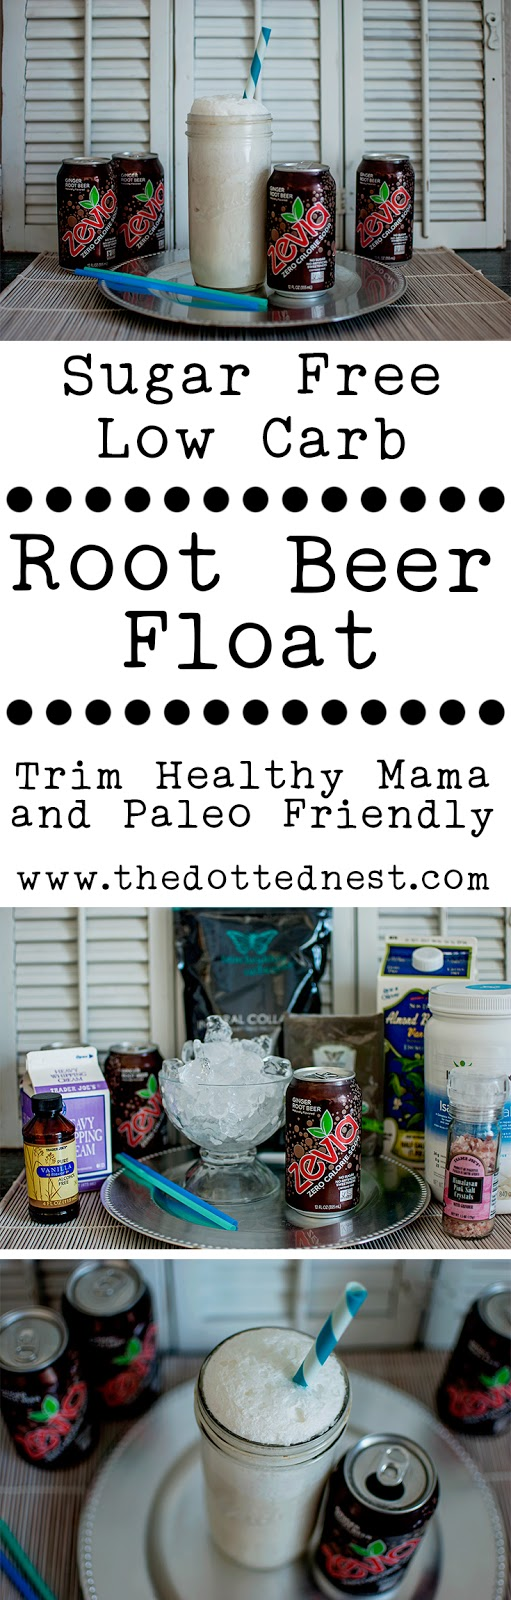 Root Beer Float Sugar Free and Low Carb Recipe Trim Healthy Mama and Paleo Friendly